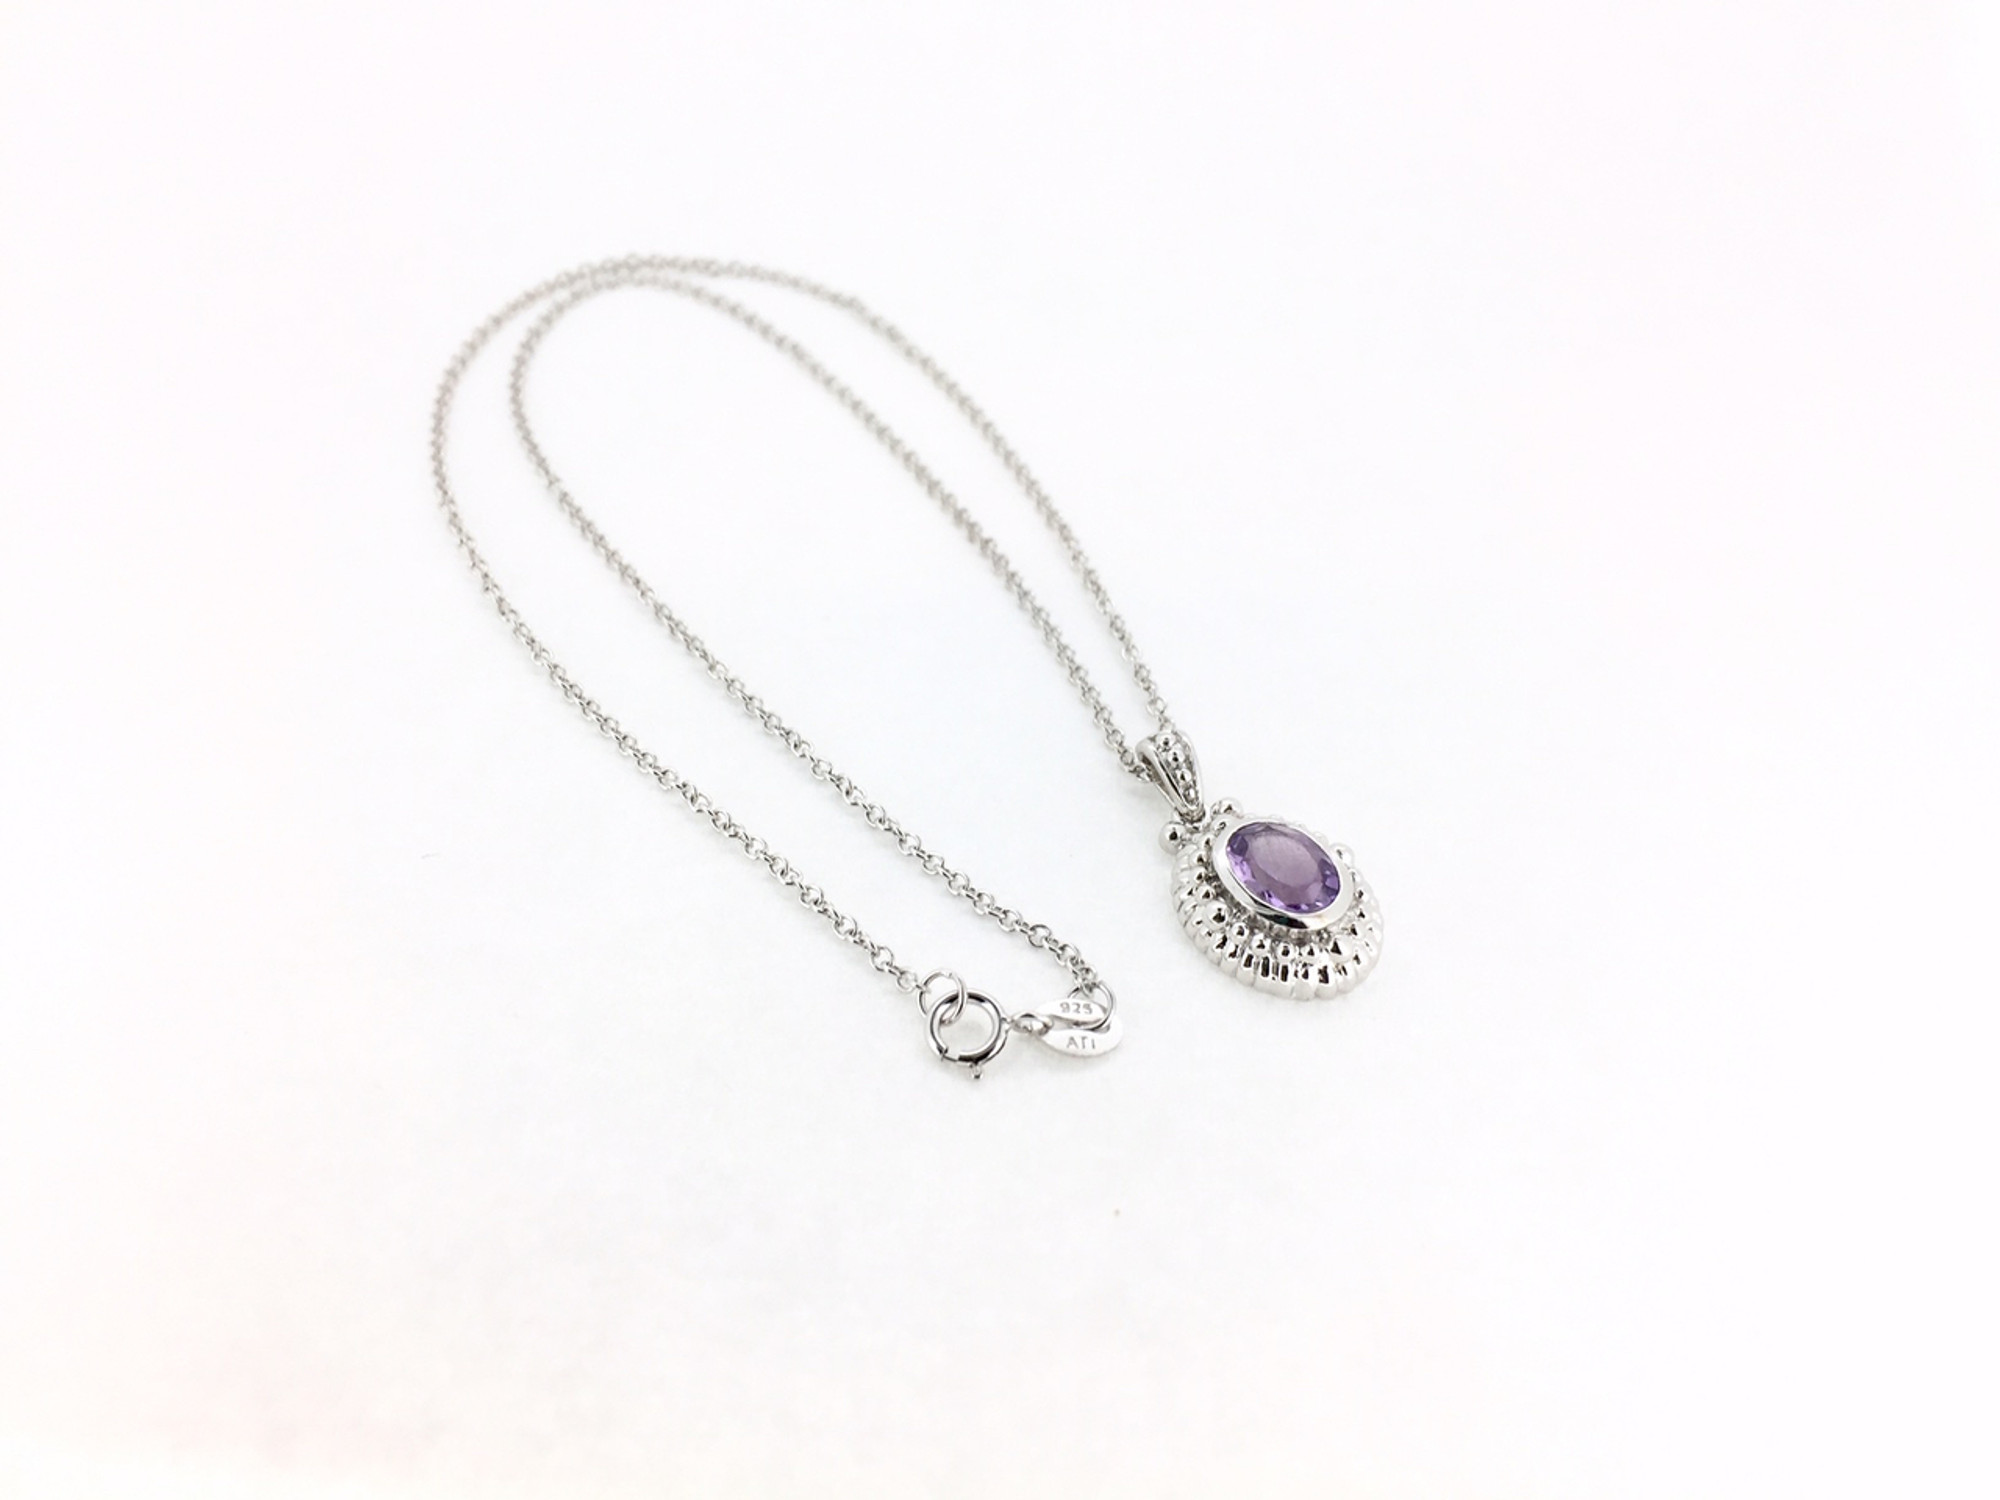 78a862a6e Sterling Silver/Amethyst Oval Necklace Sterling Silver/Amethyst Oval  Necklace